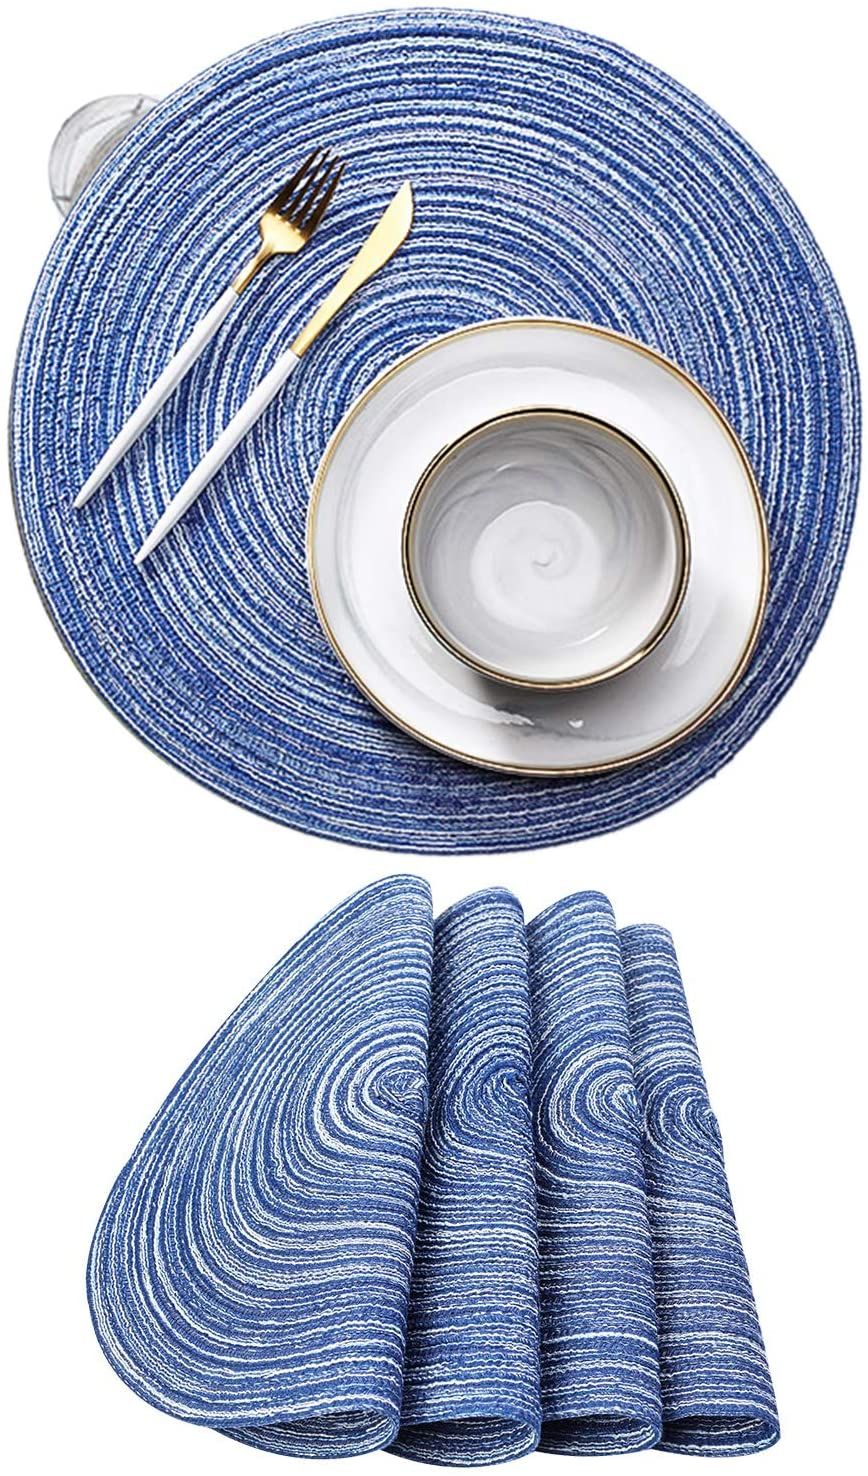 YouthGo Placemats Washable Dining Table Placemats Woven Set of 4 Kitchen Table Mats